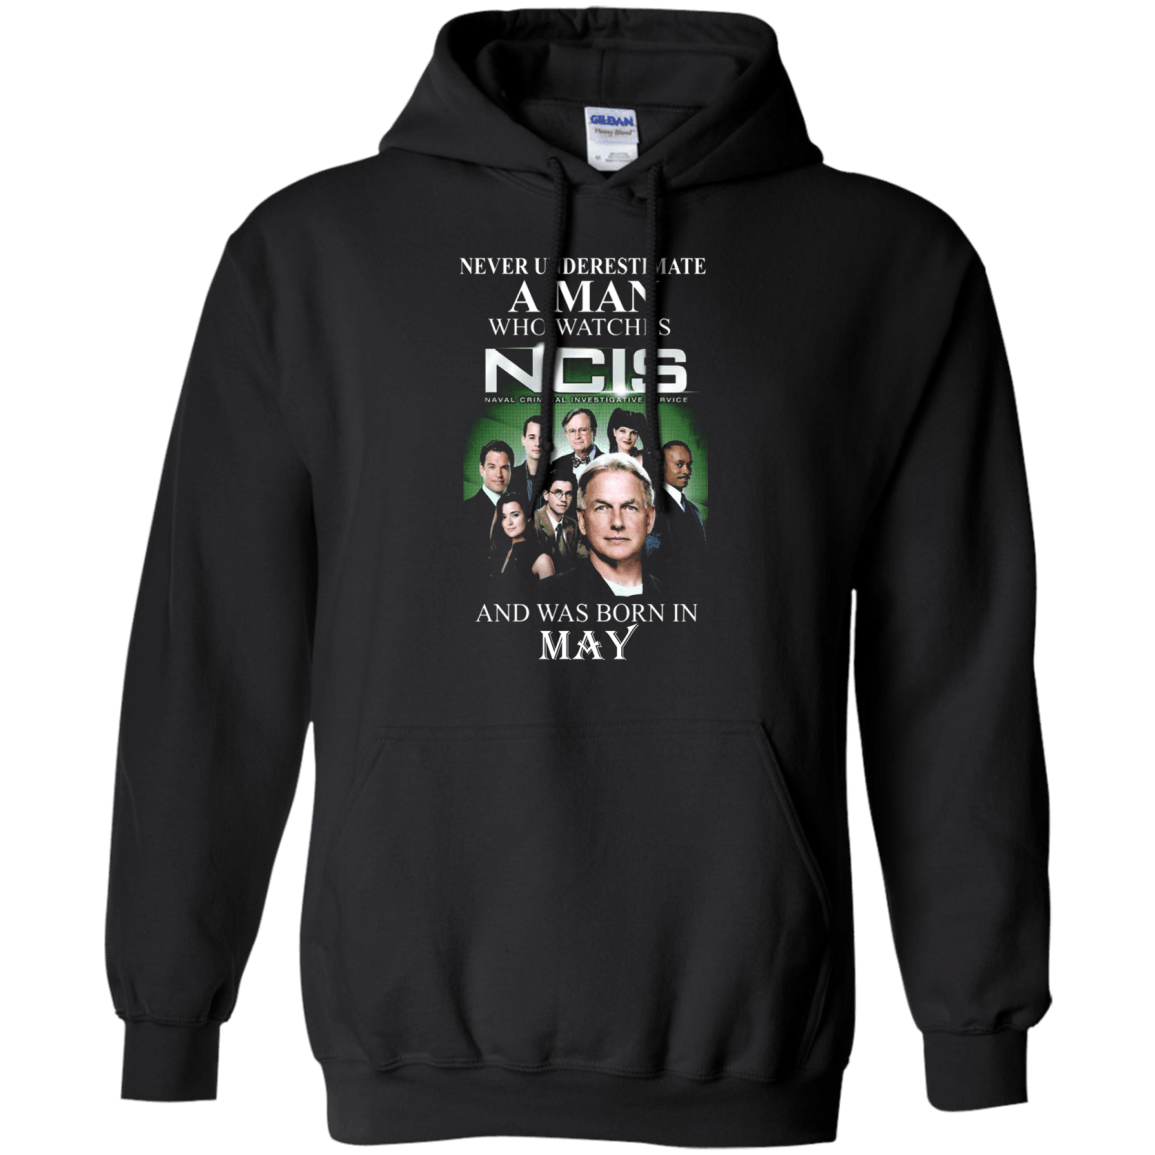 Never underestimate A Man who watches NCIS and was born in May Hoodie